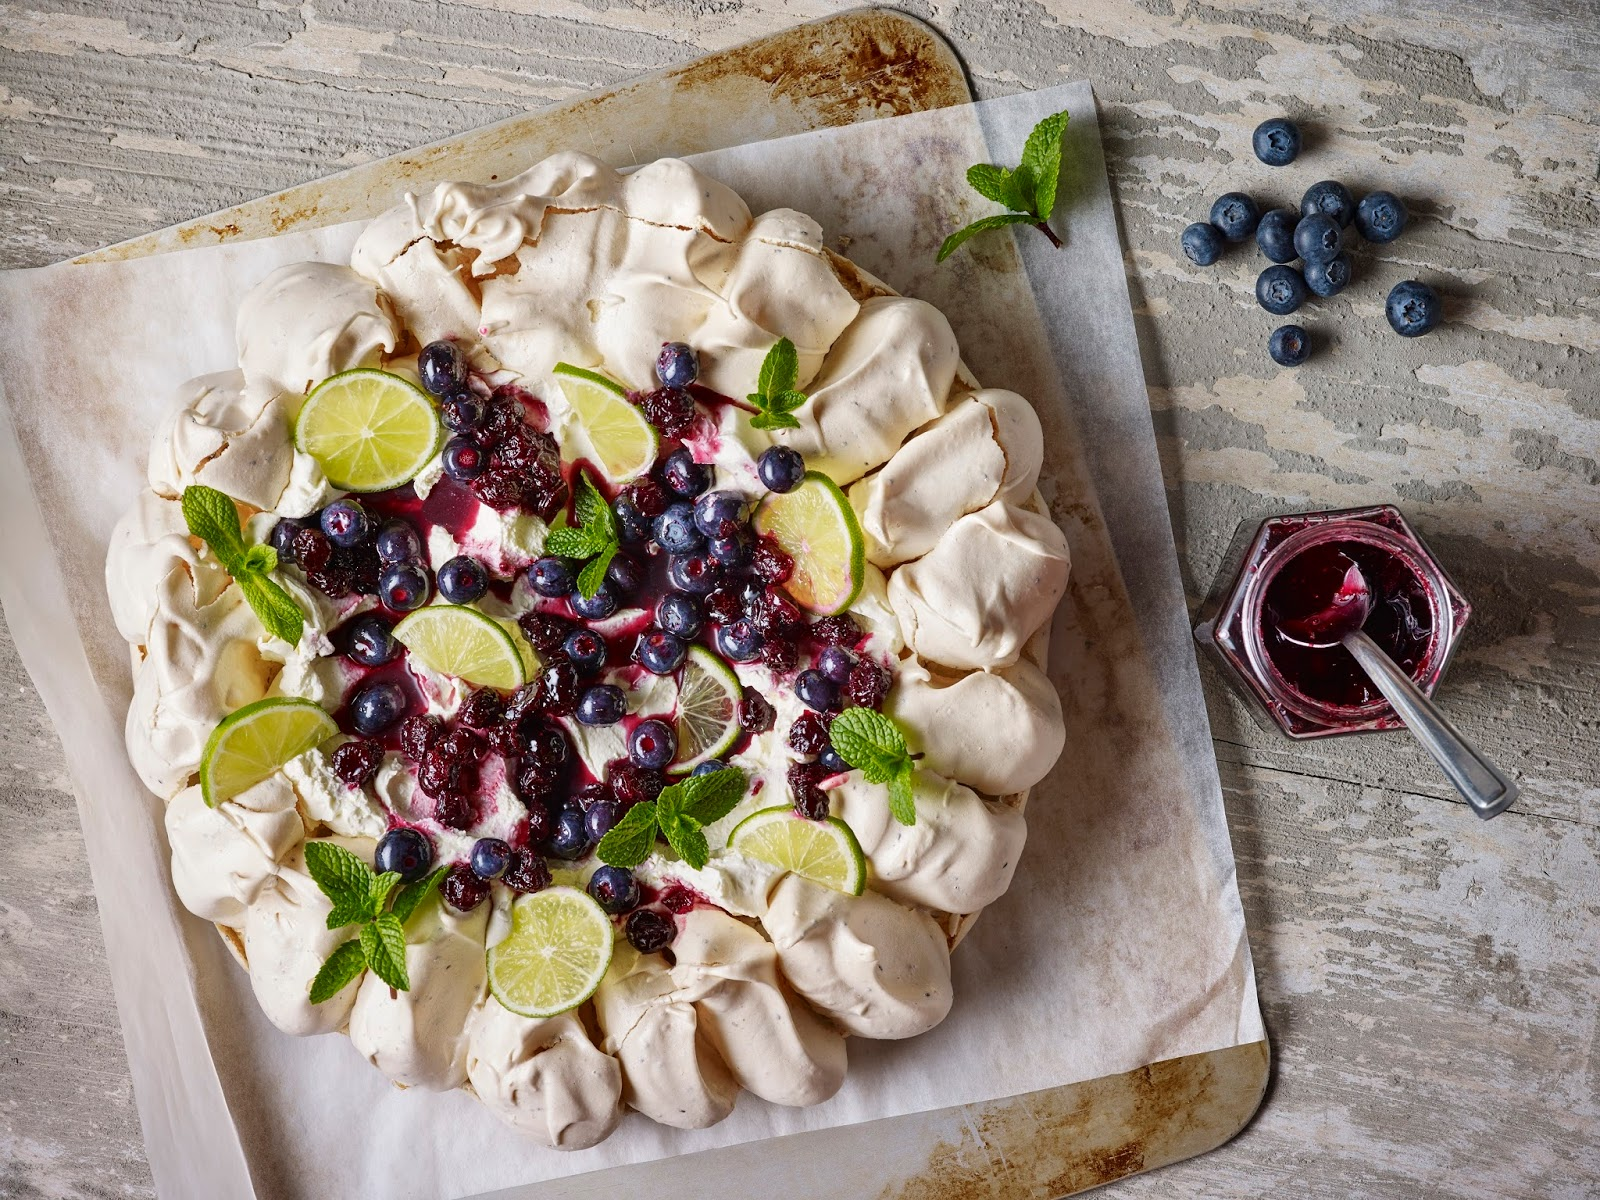 How To Make A Blueberry, Lime and Chia Seed Pavlova